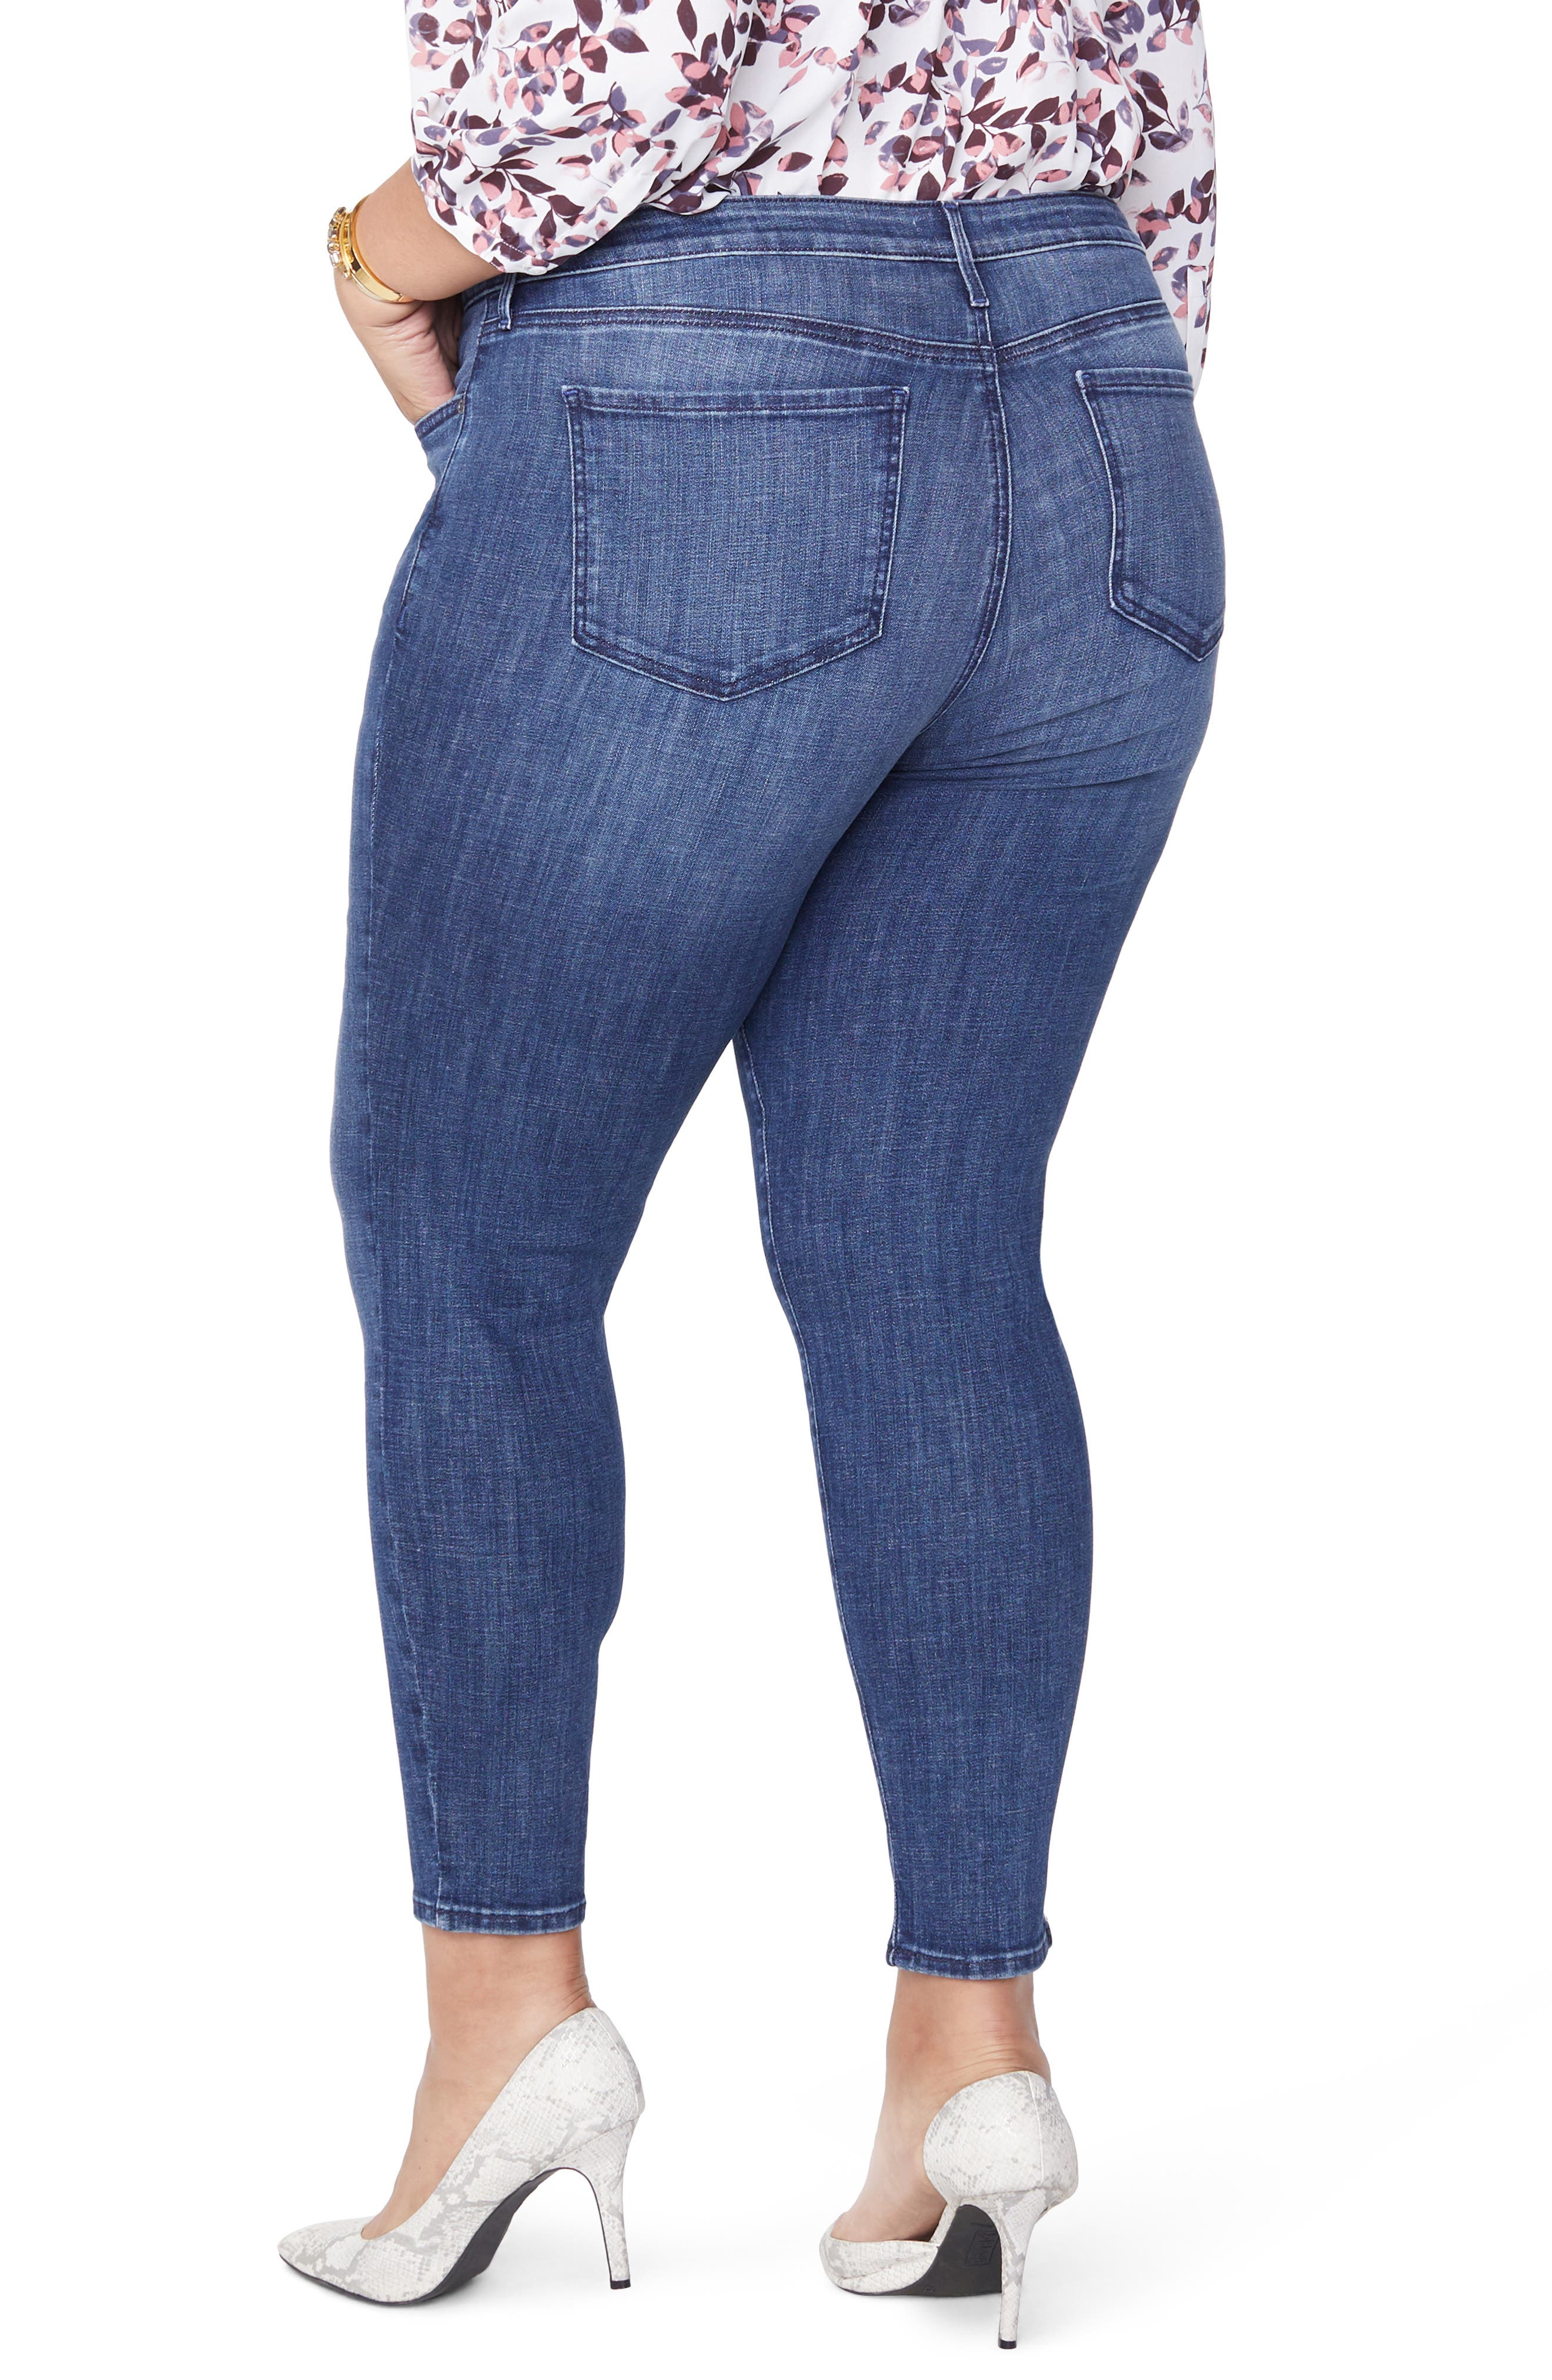 Ami Skinny Jeans,                             Alternate thumbnail 2, color,                             LUPINE